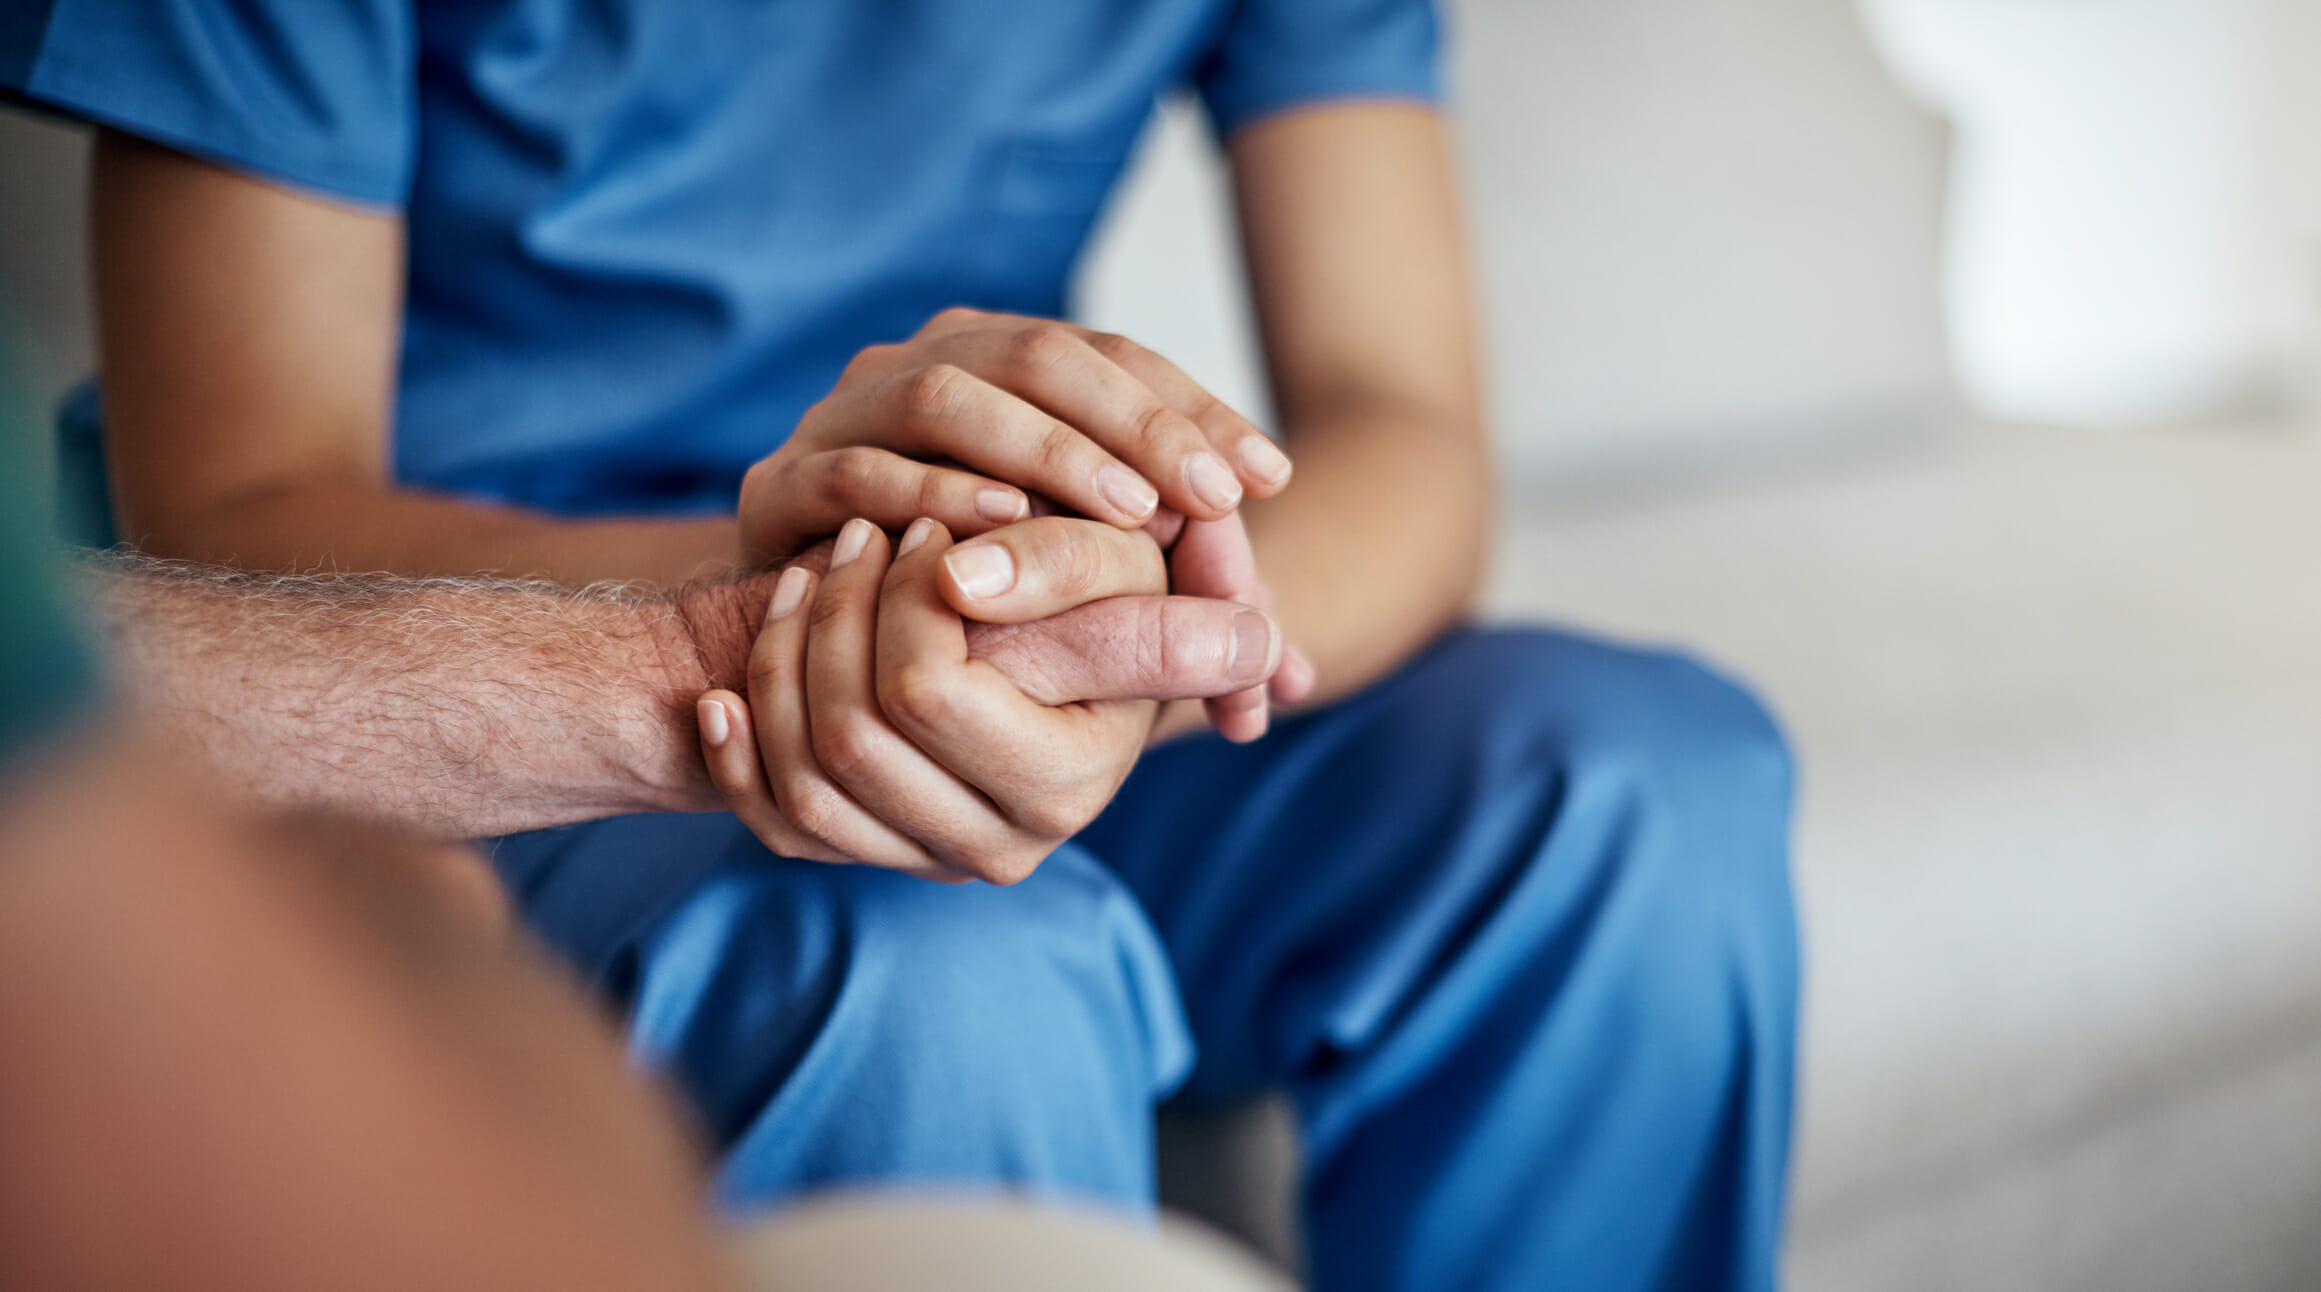 How States Can Better Care for Direct Care Workers